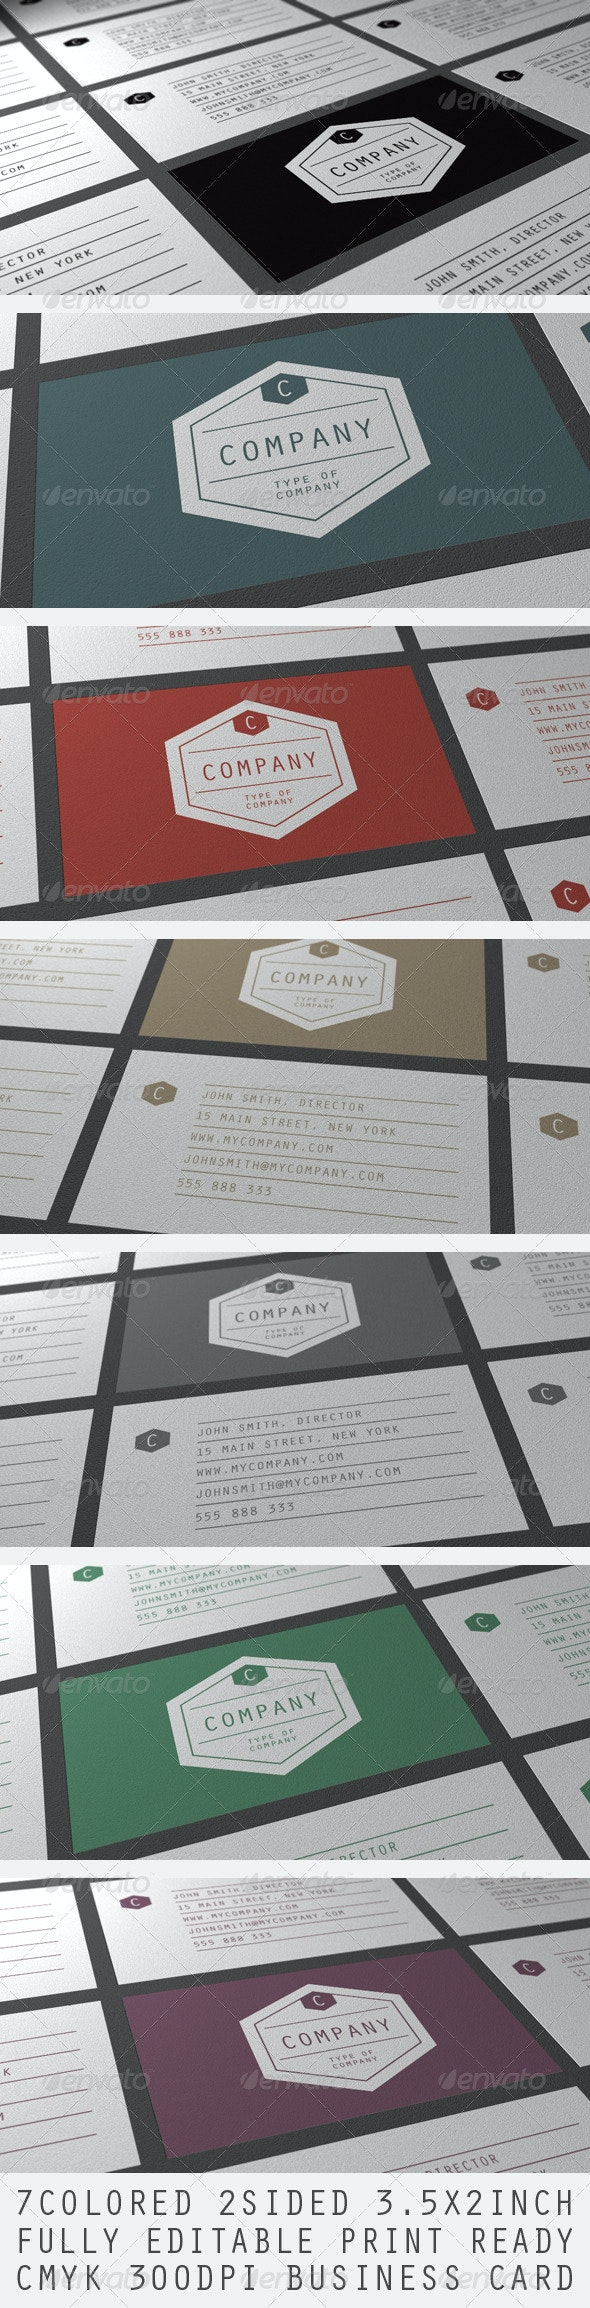 OLD BUSINESS CARD - Retro/Vintage Business Cards